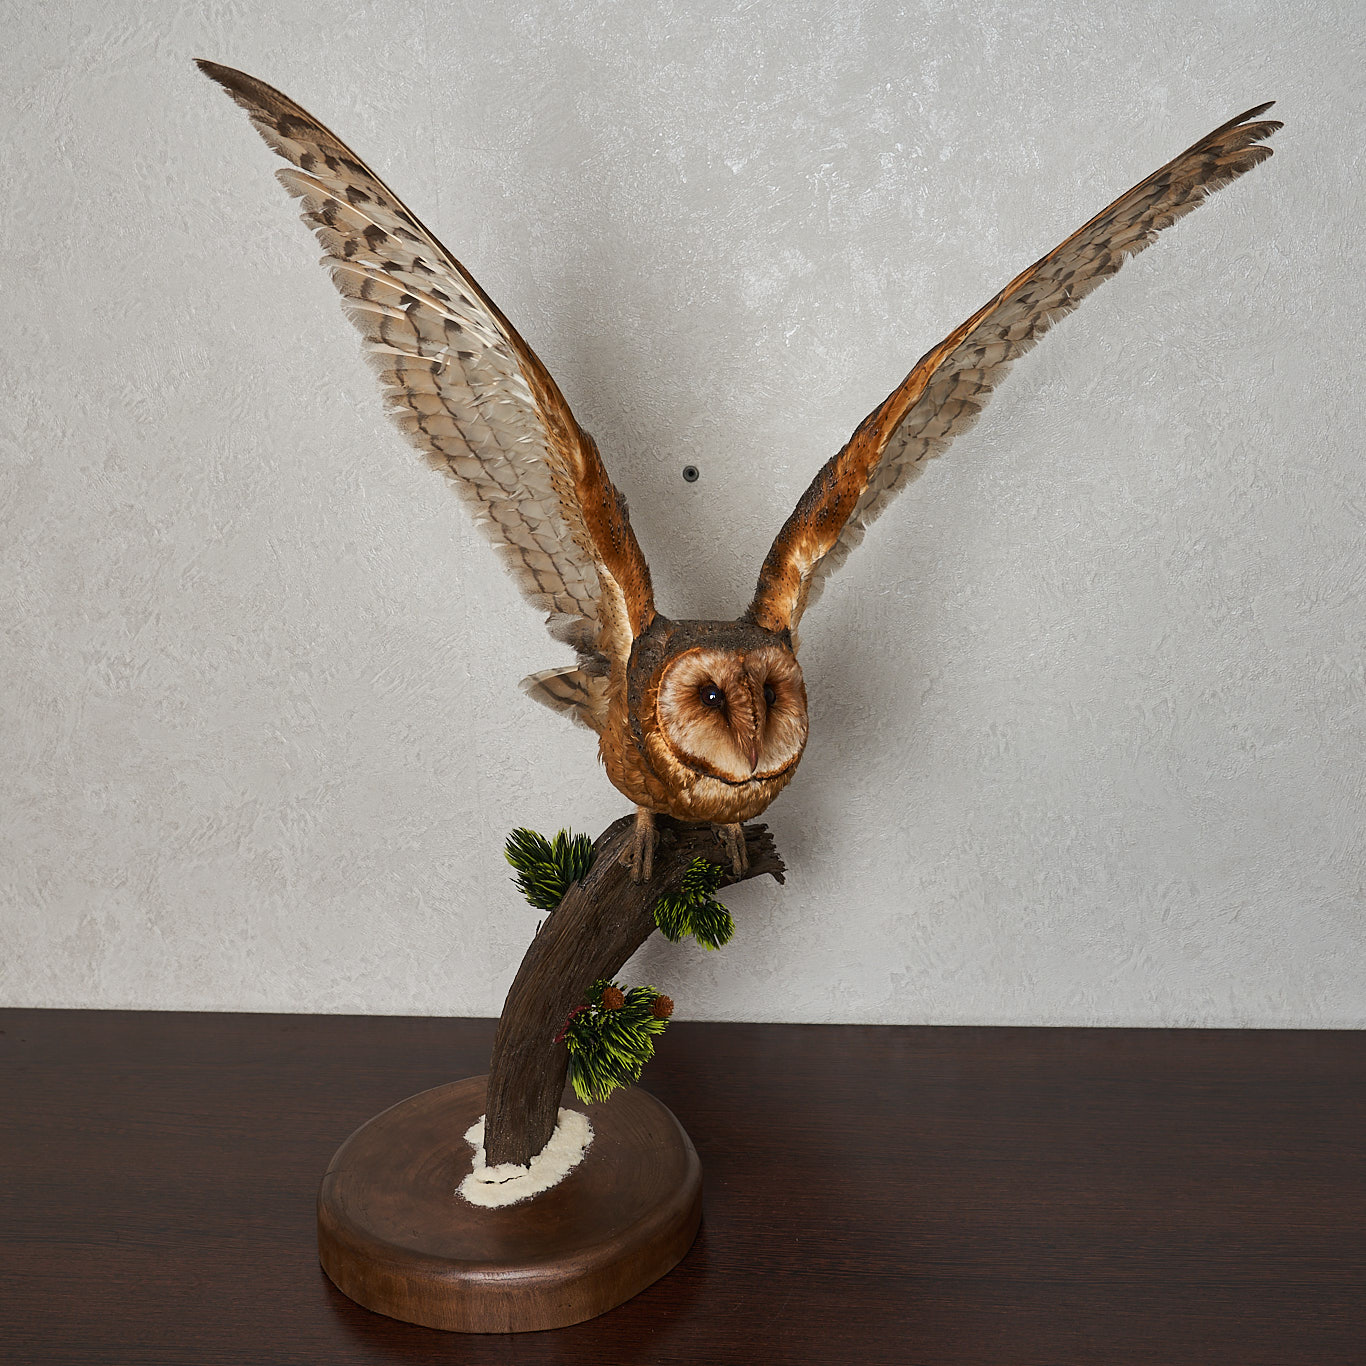 BARN OWL TAXIDERMY BIRD MOUNT - MOUNTED, STUFFED BIRDS FOR ...